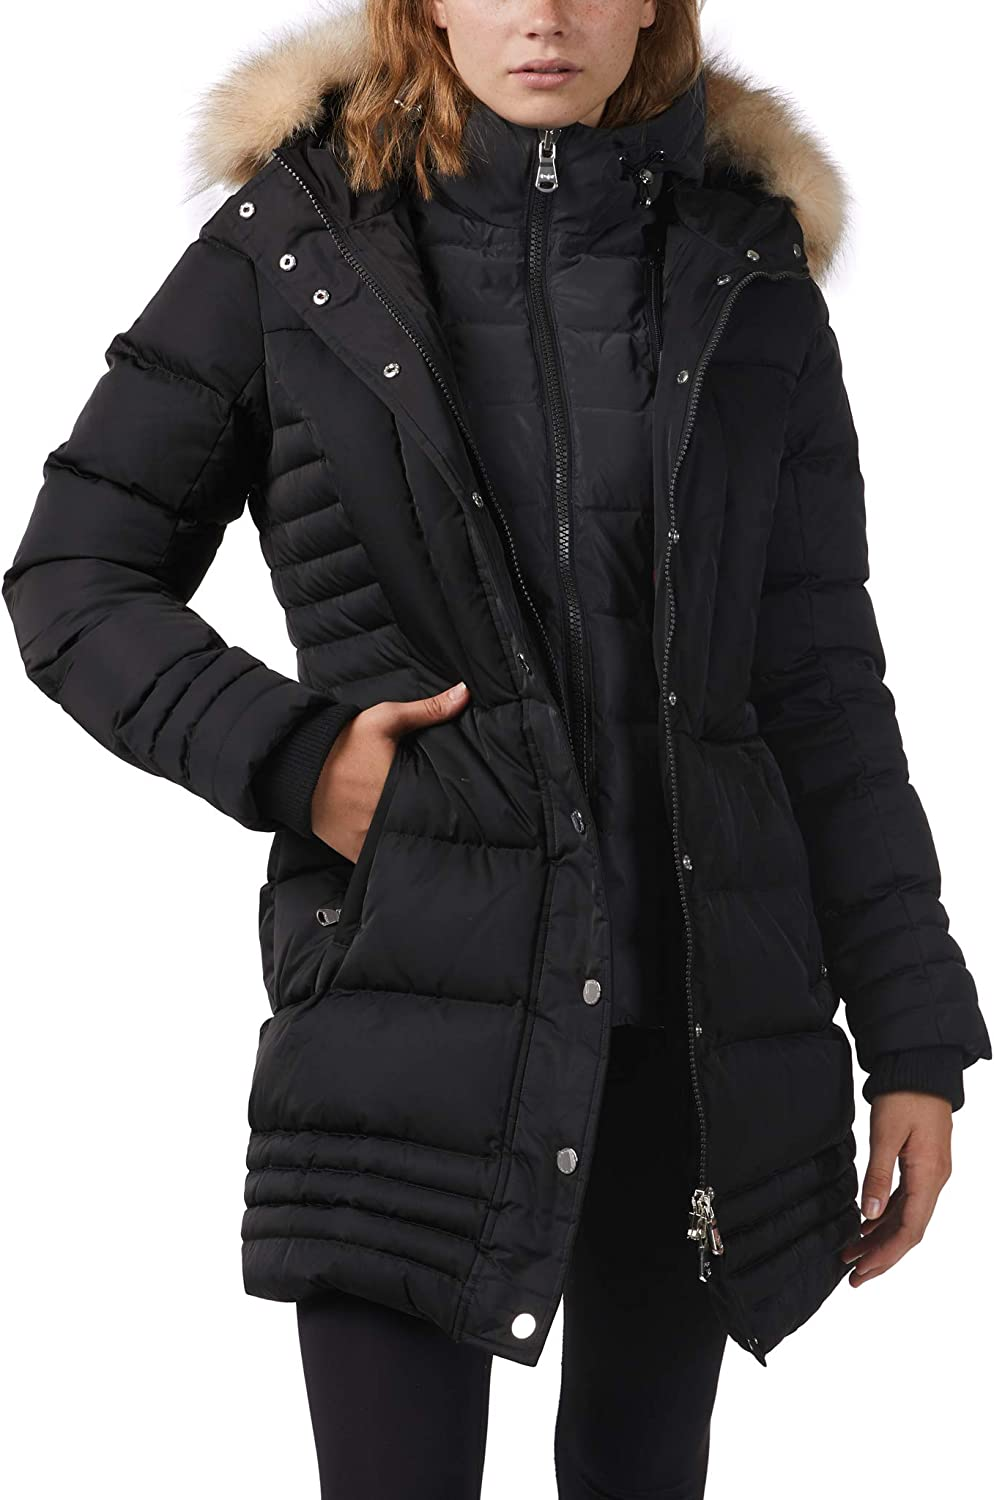 Pajar Women's Discovery Down Quilted Trench Parka Jacket with Reflective Bib and Fur Hood